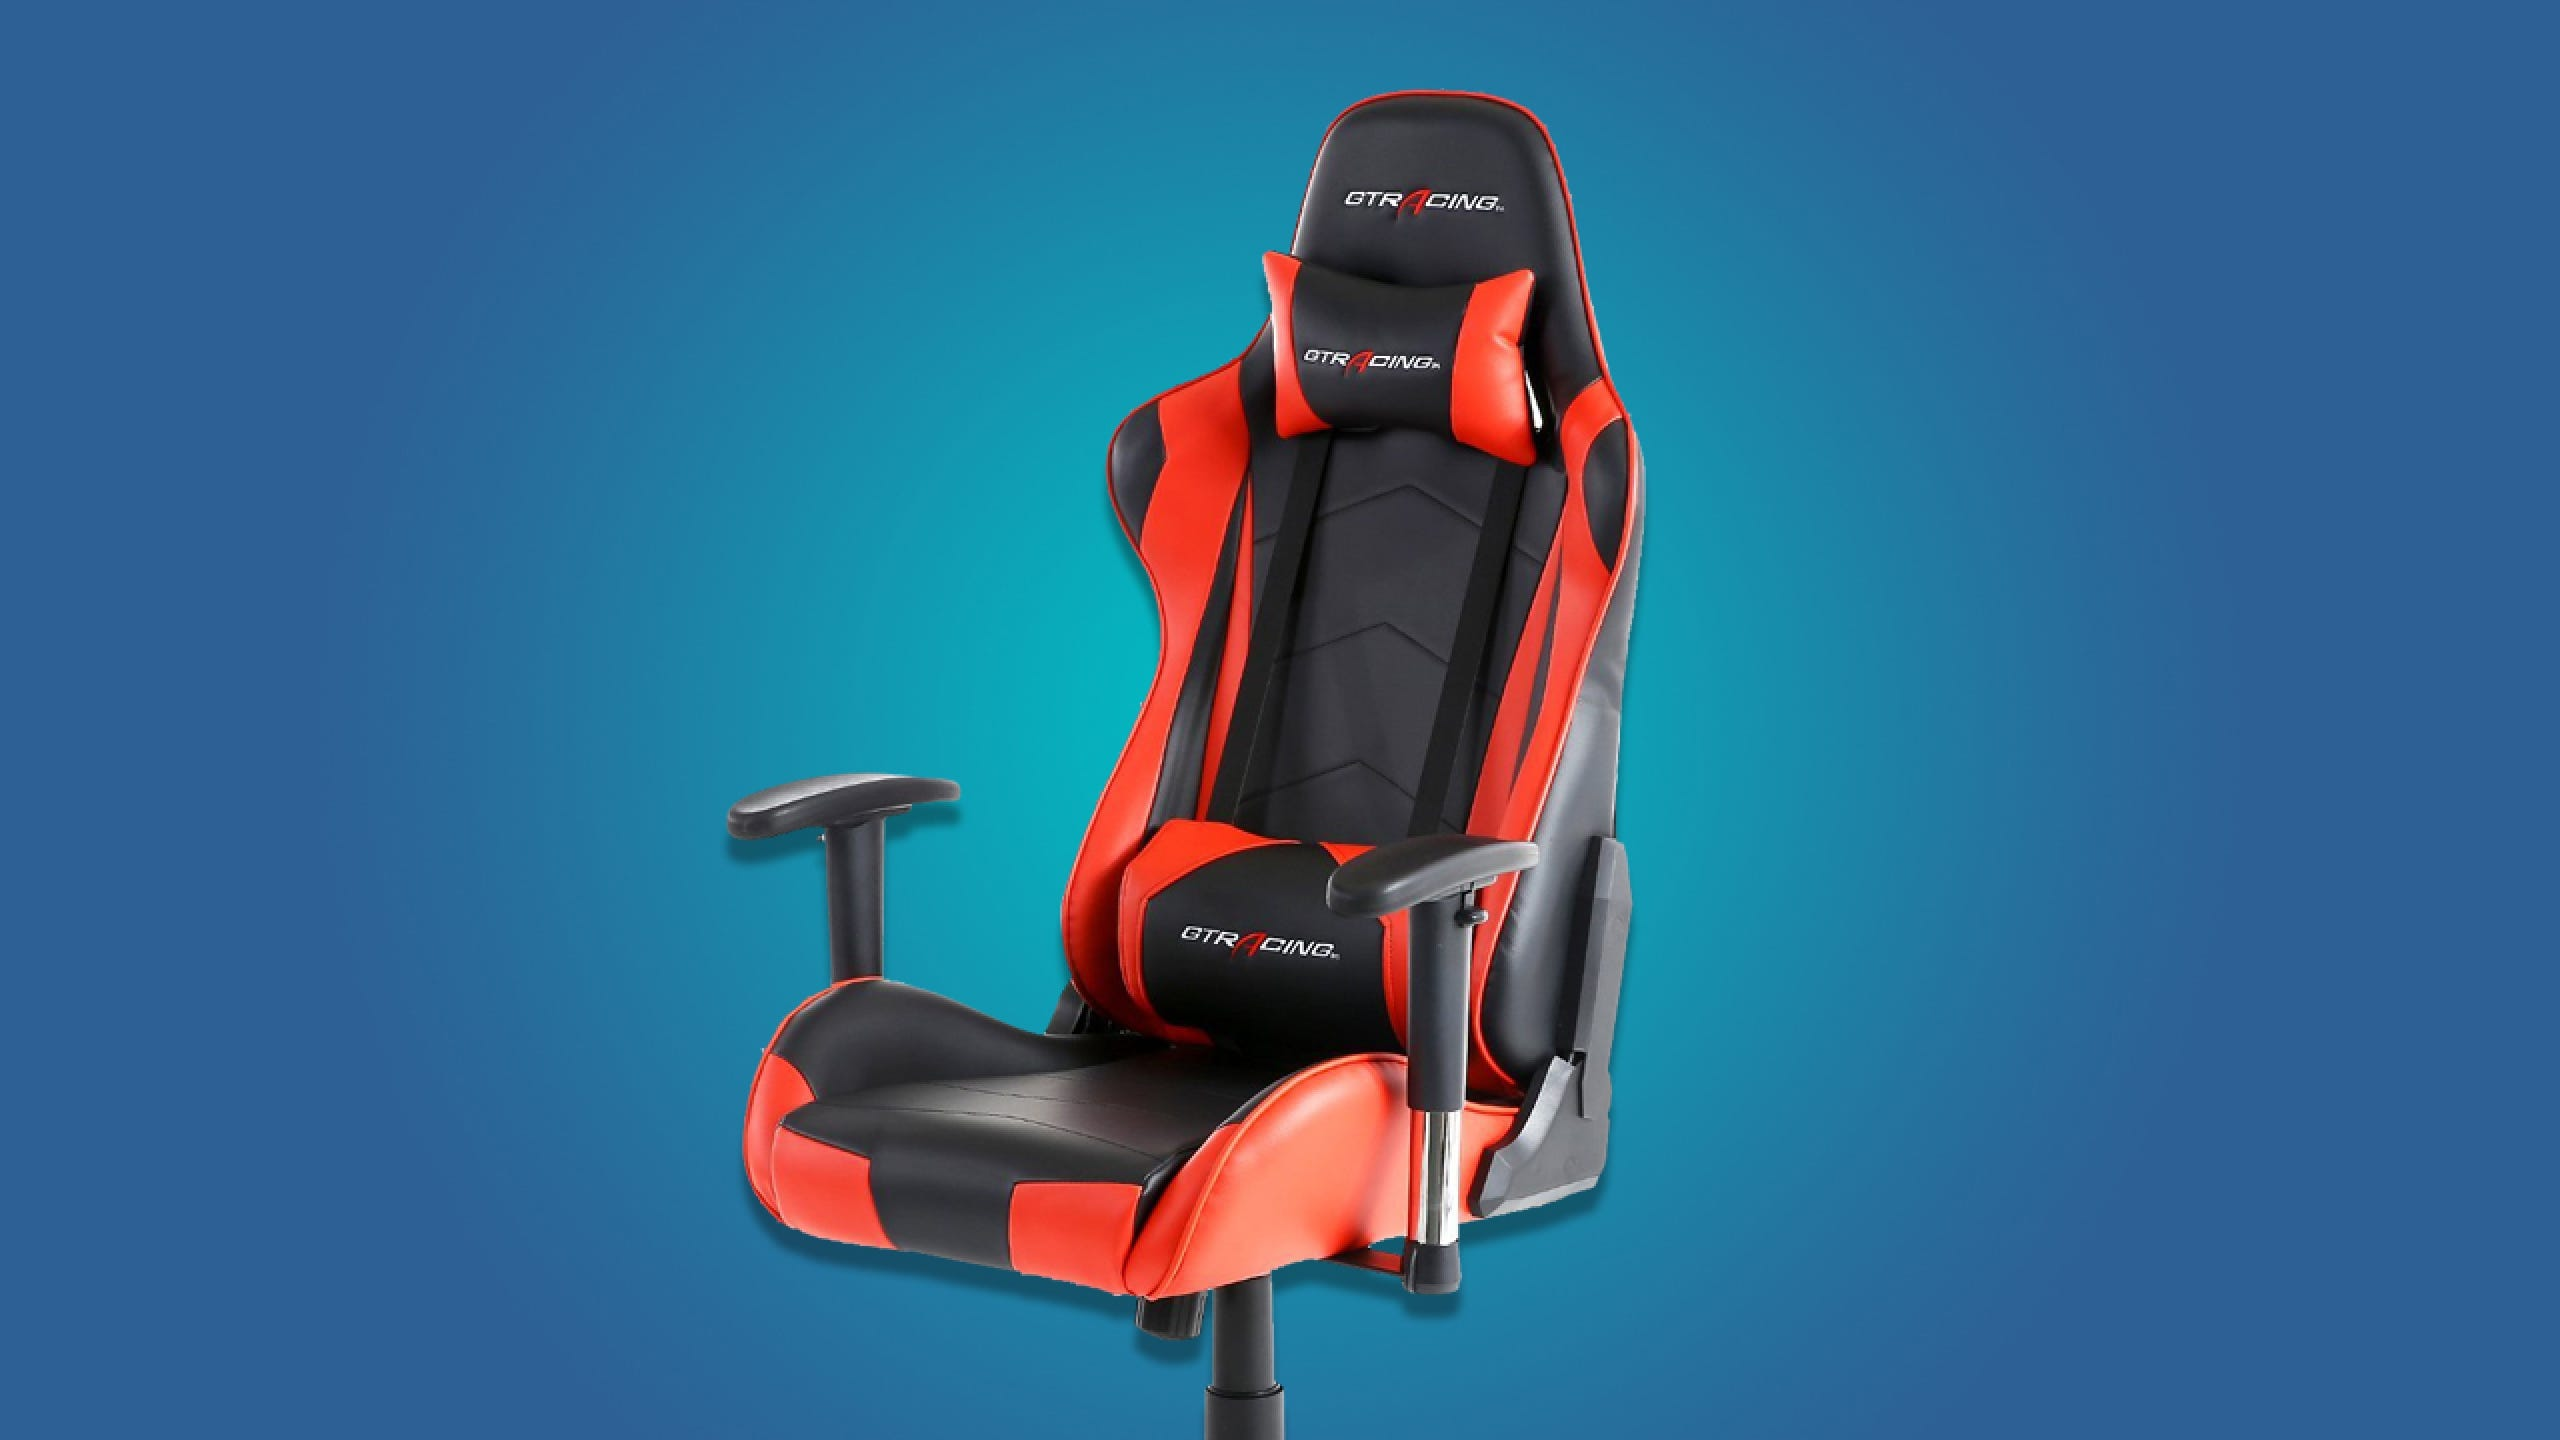 Those Ugly Racing Style Gaming Chairs Are So Dang Comfortable Review Geek